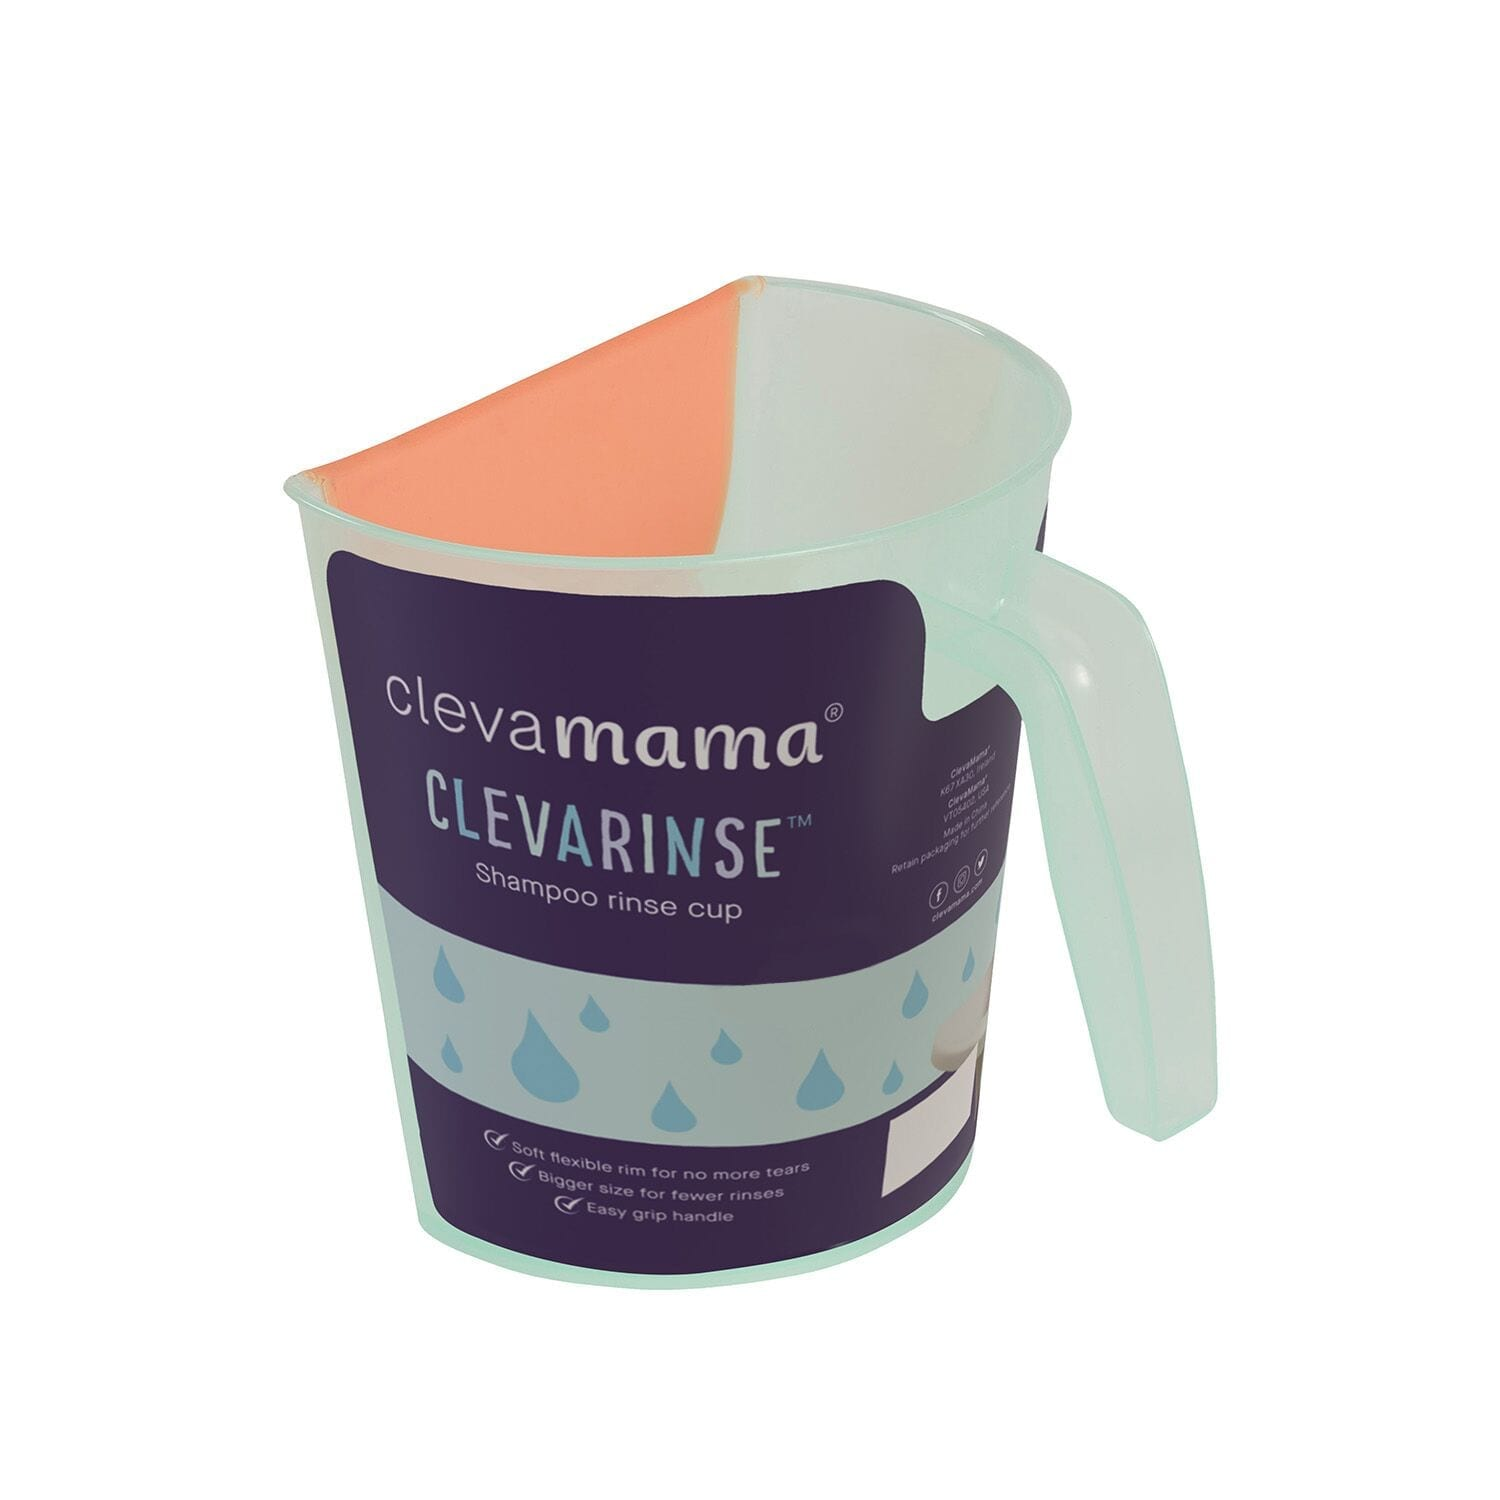 Clevarinse Shampoo Rinse Cup product image